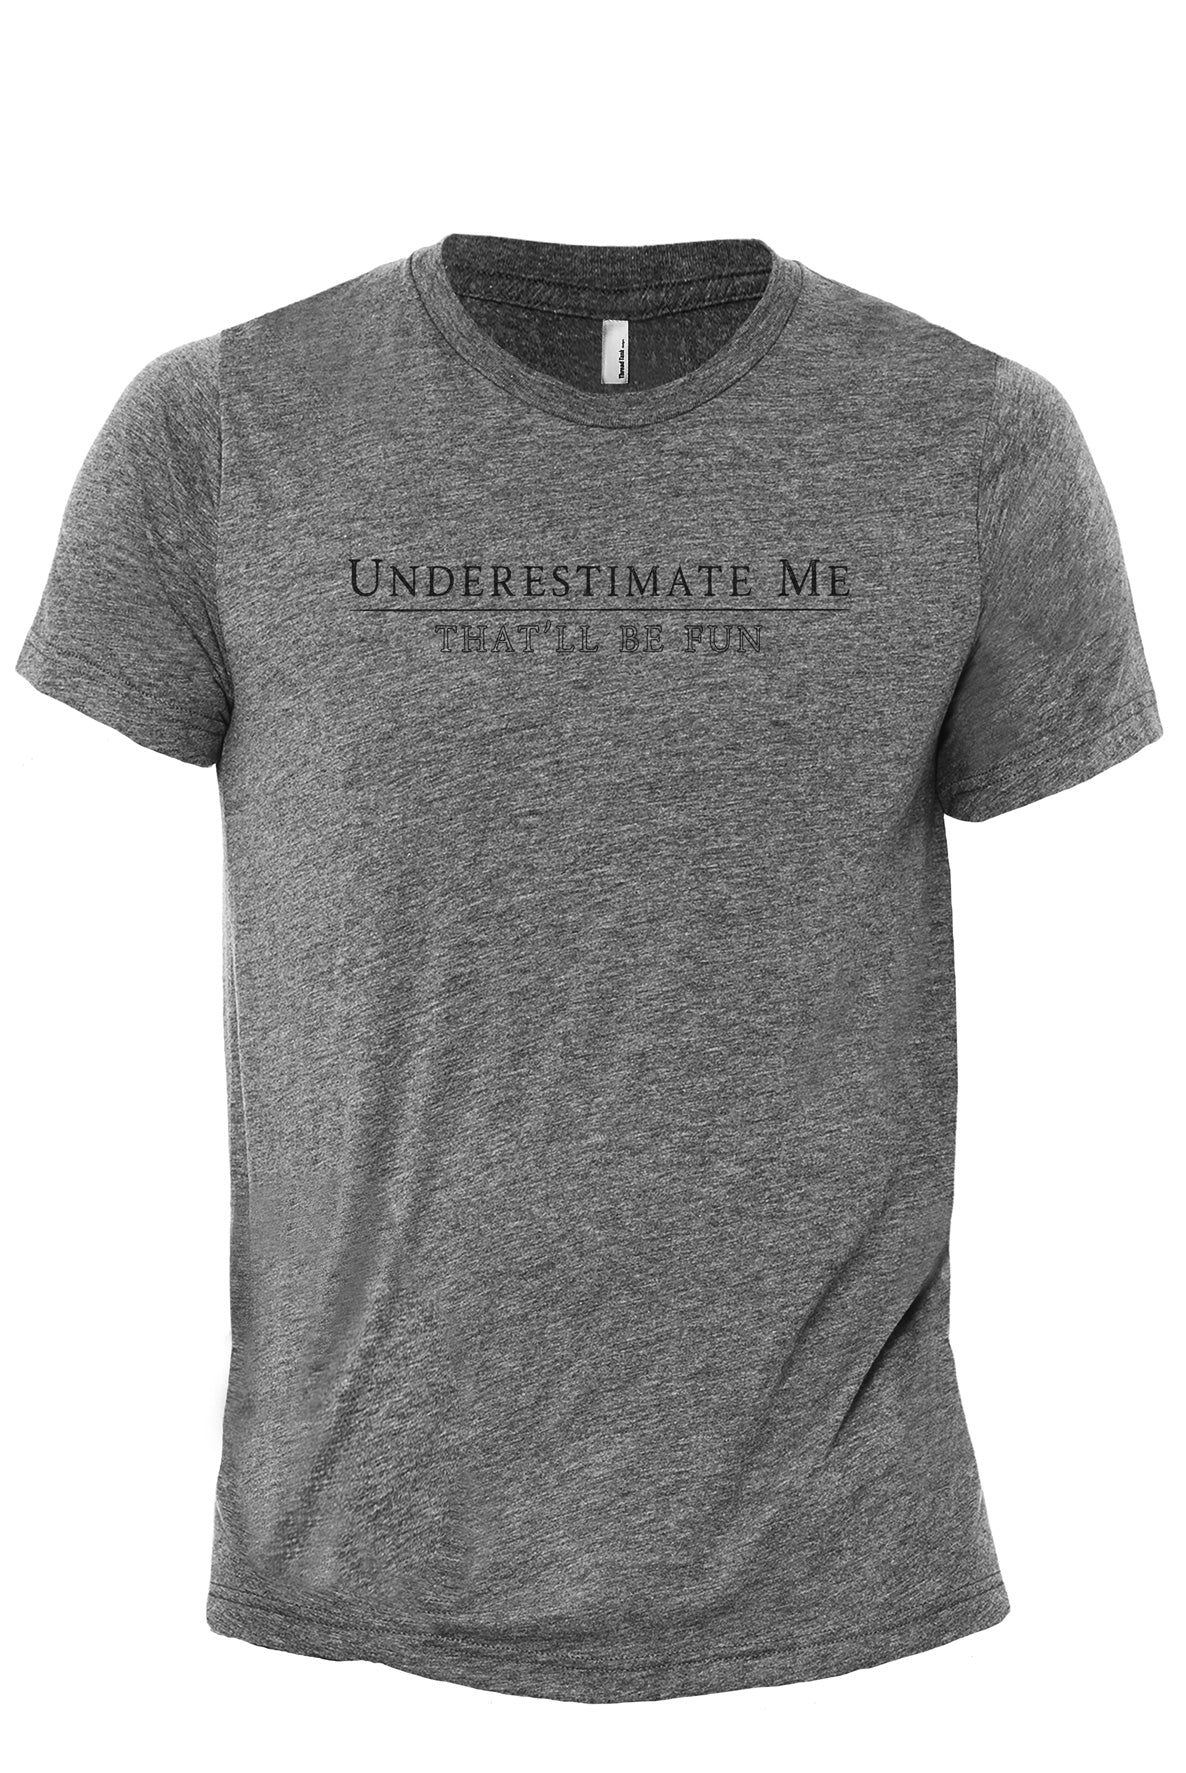 Underestimate Me - That'll Be Fun Charcoal Printed Graphic Men's Crew T-Shirt Tee